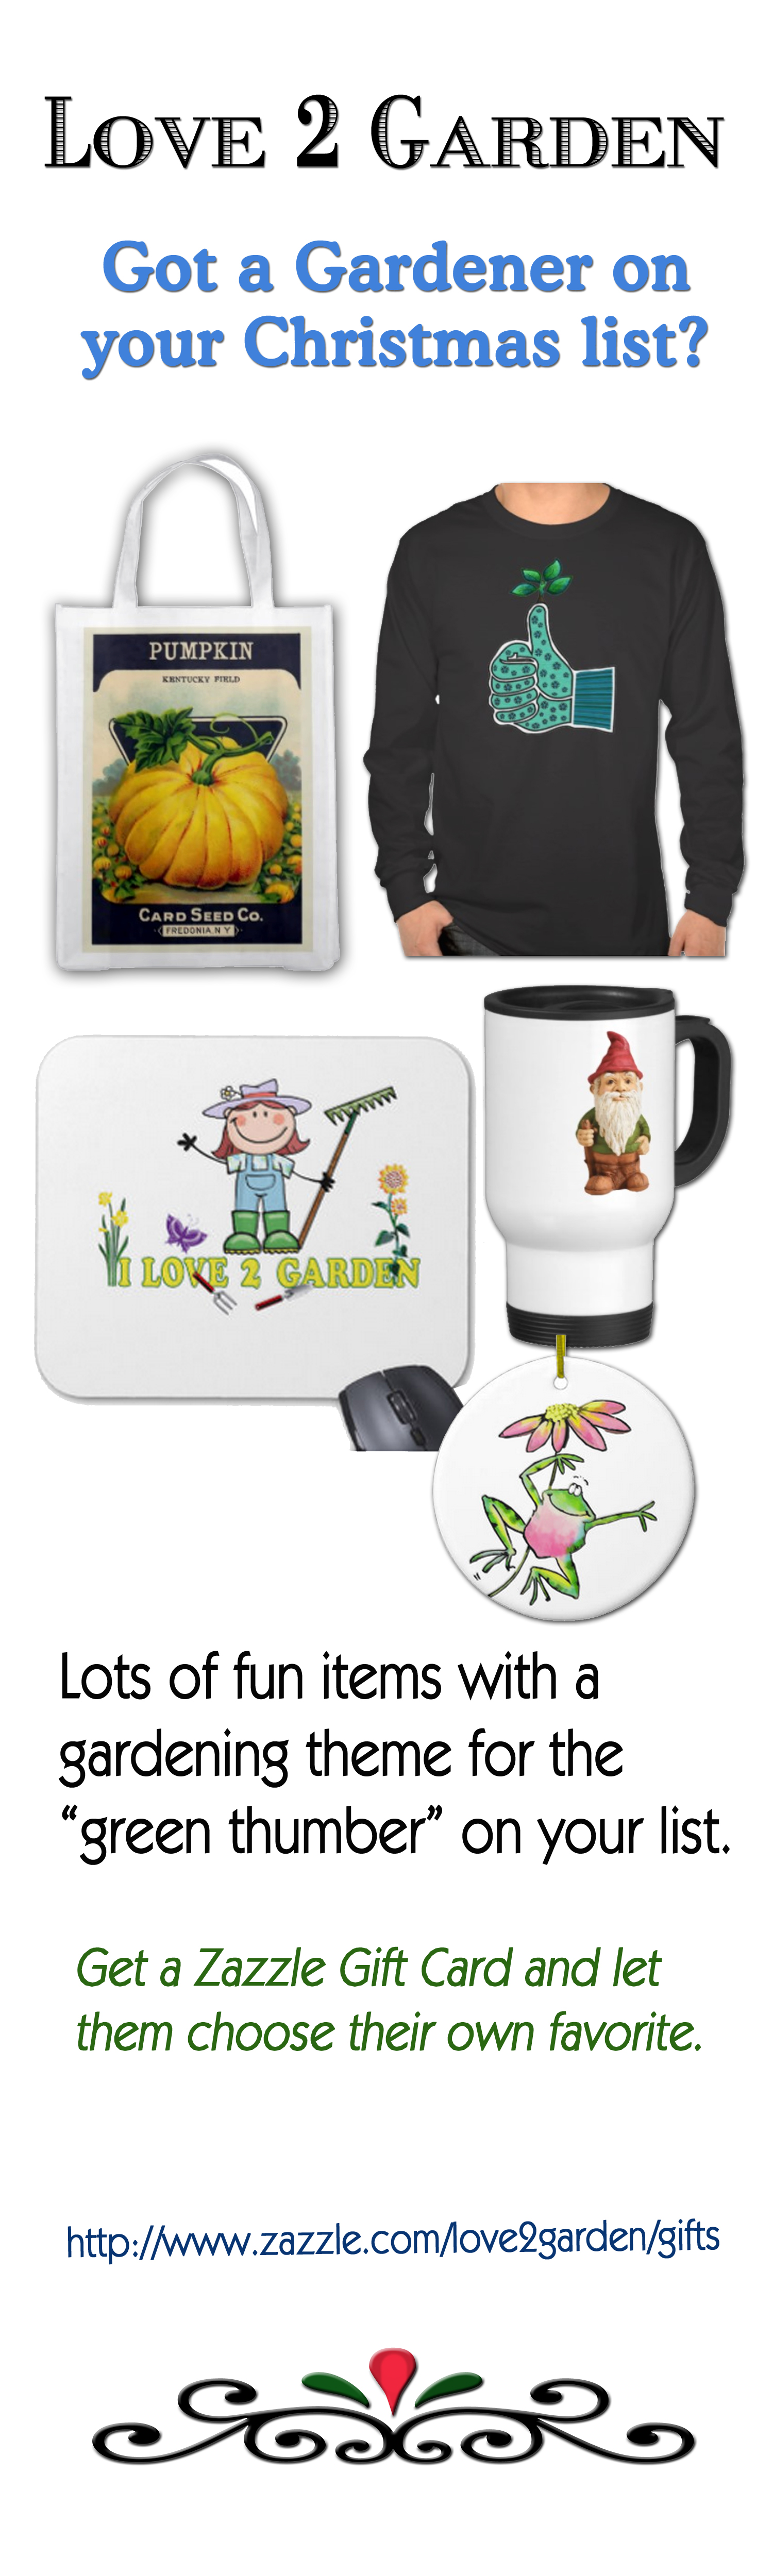 How about some gift ideas from a shop with all kinds of fun garden themed items with creative images.